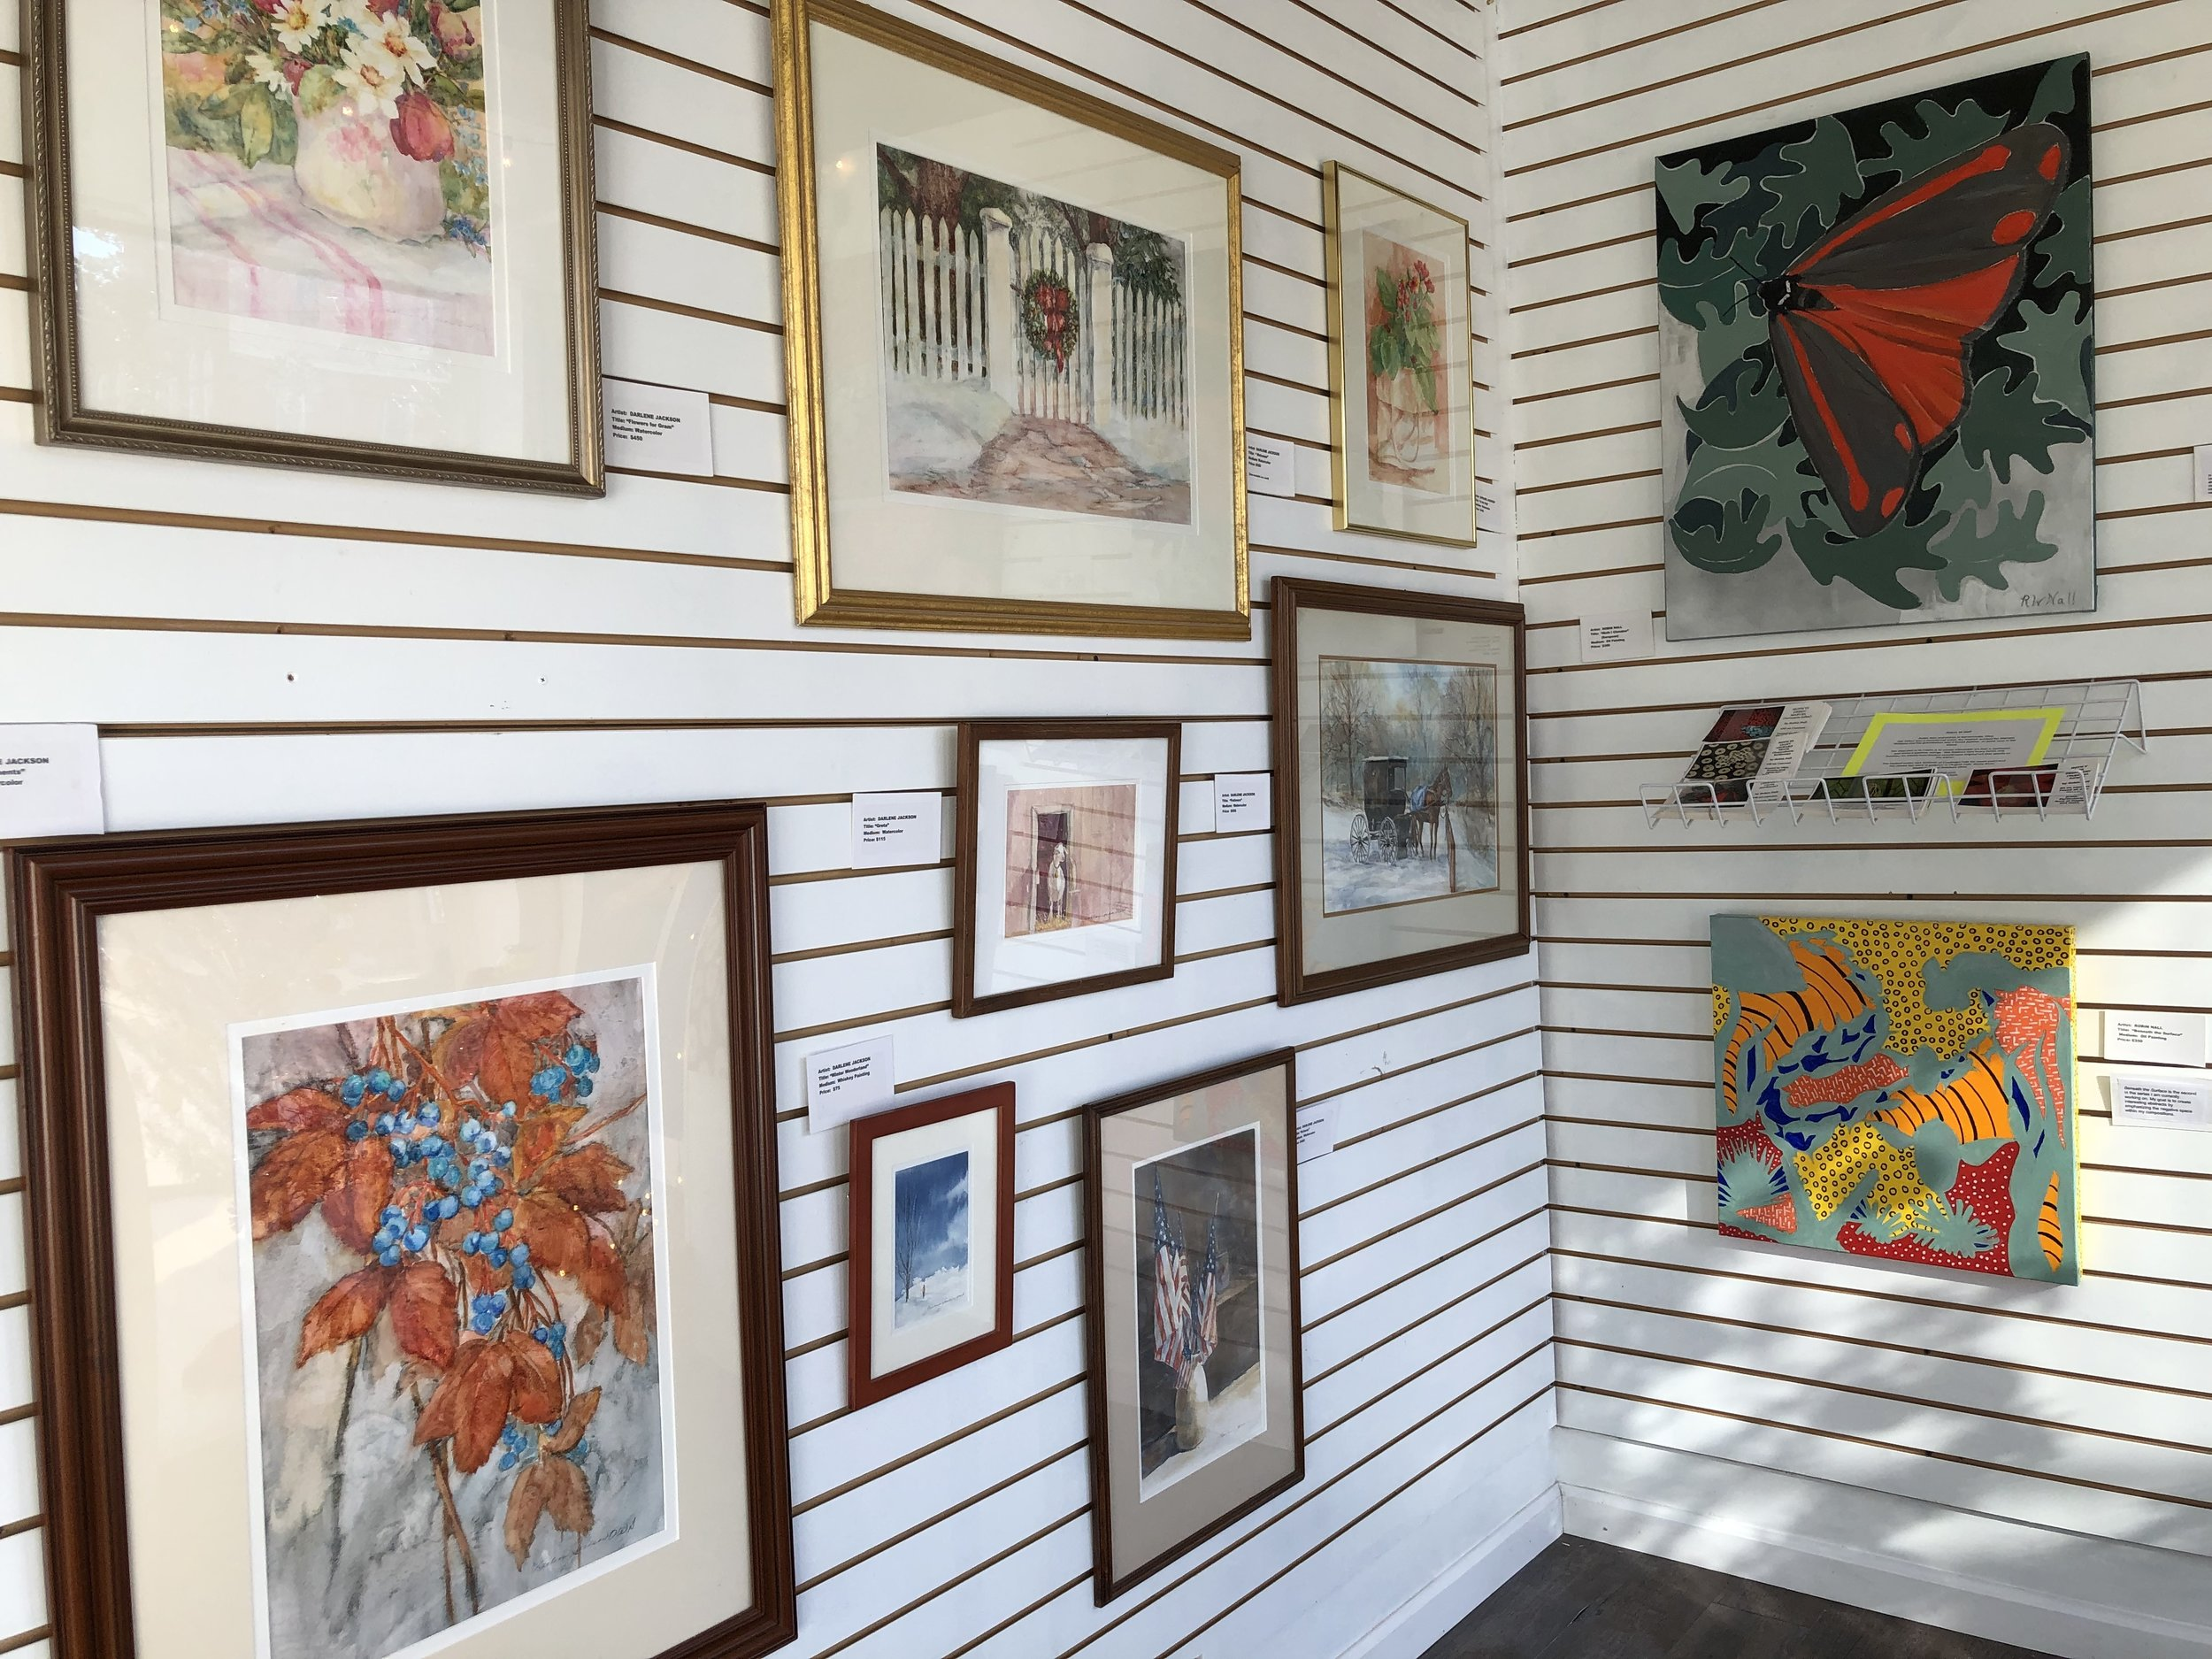 The Mantua Pop-Up Artists' Market presented a variety of fine arts and crafts created by local artists primarily from the northern Portage County Communities.